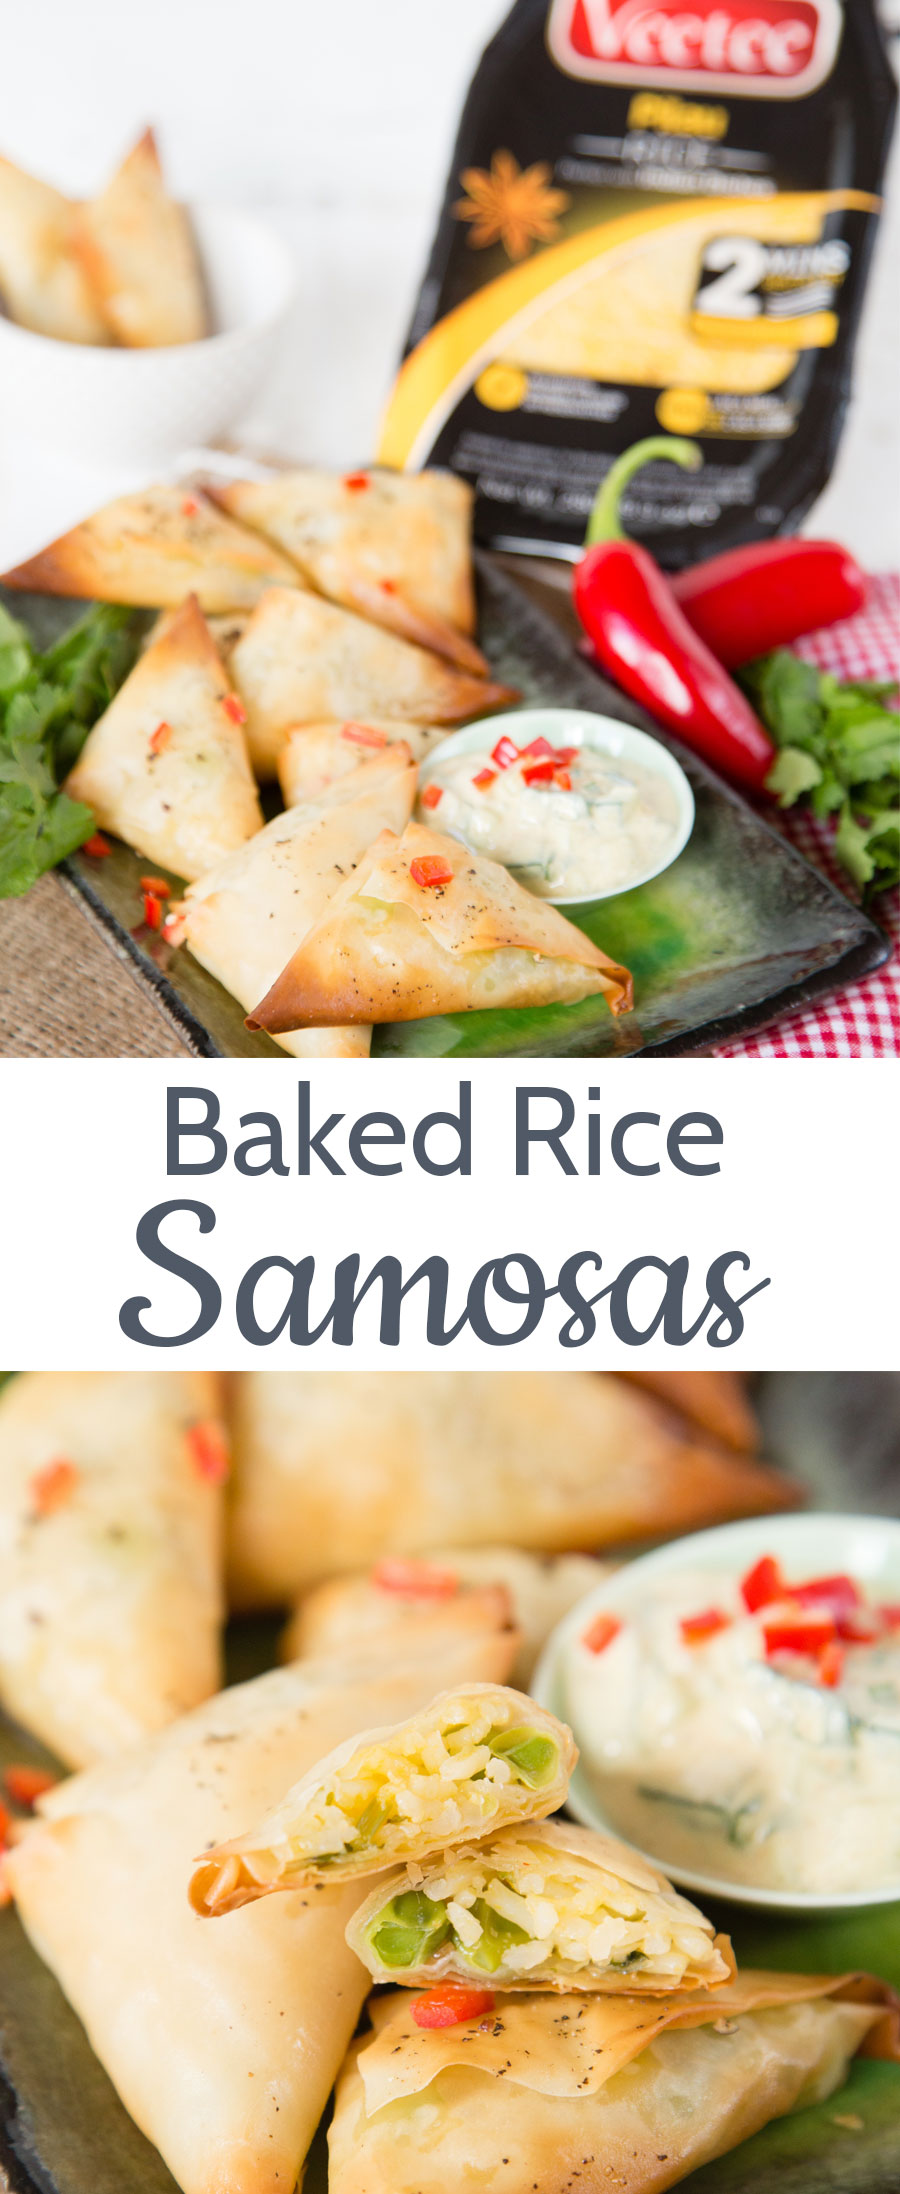 Easy to make crispy baked samosas filled with rice and peas